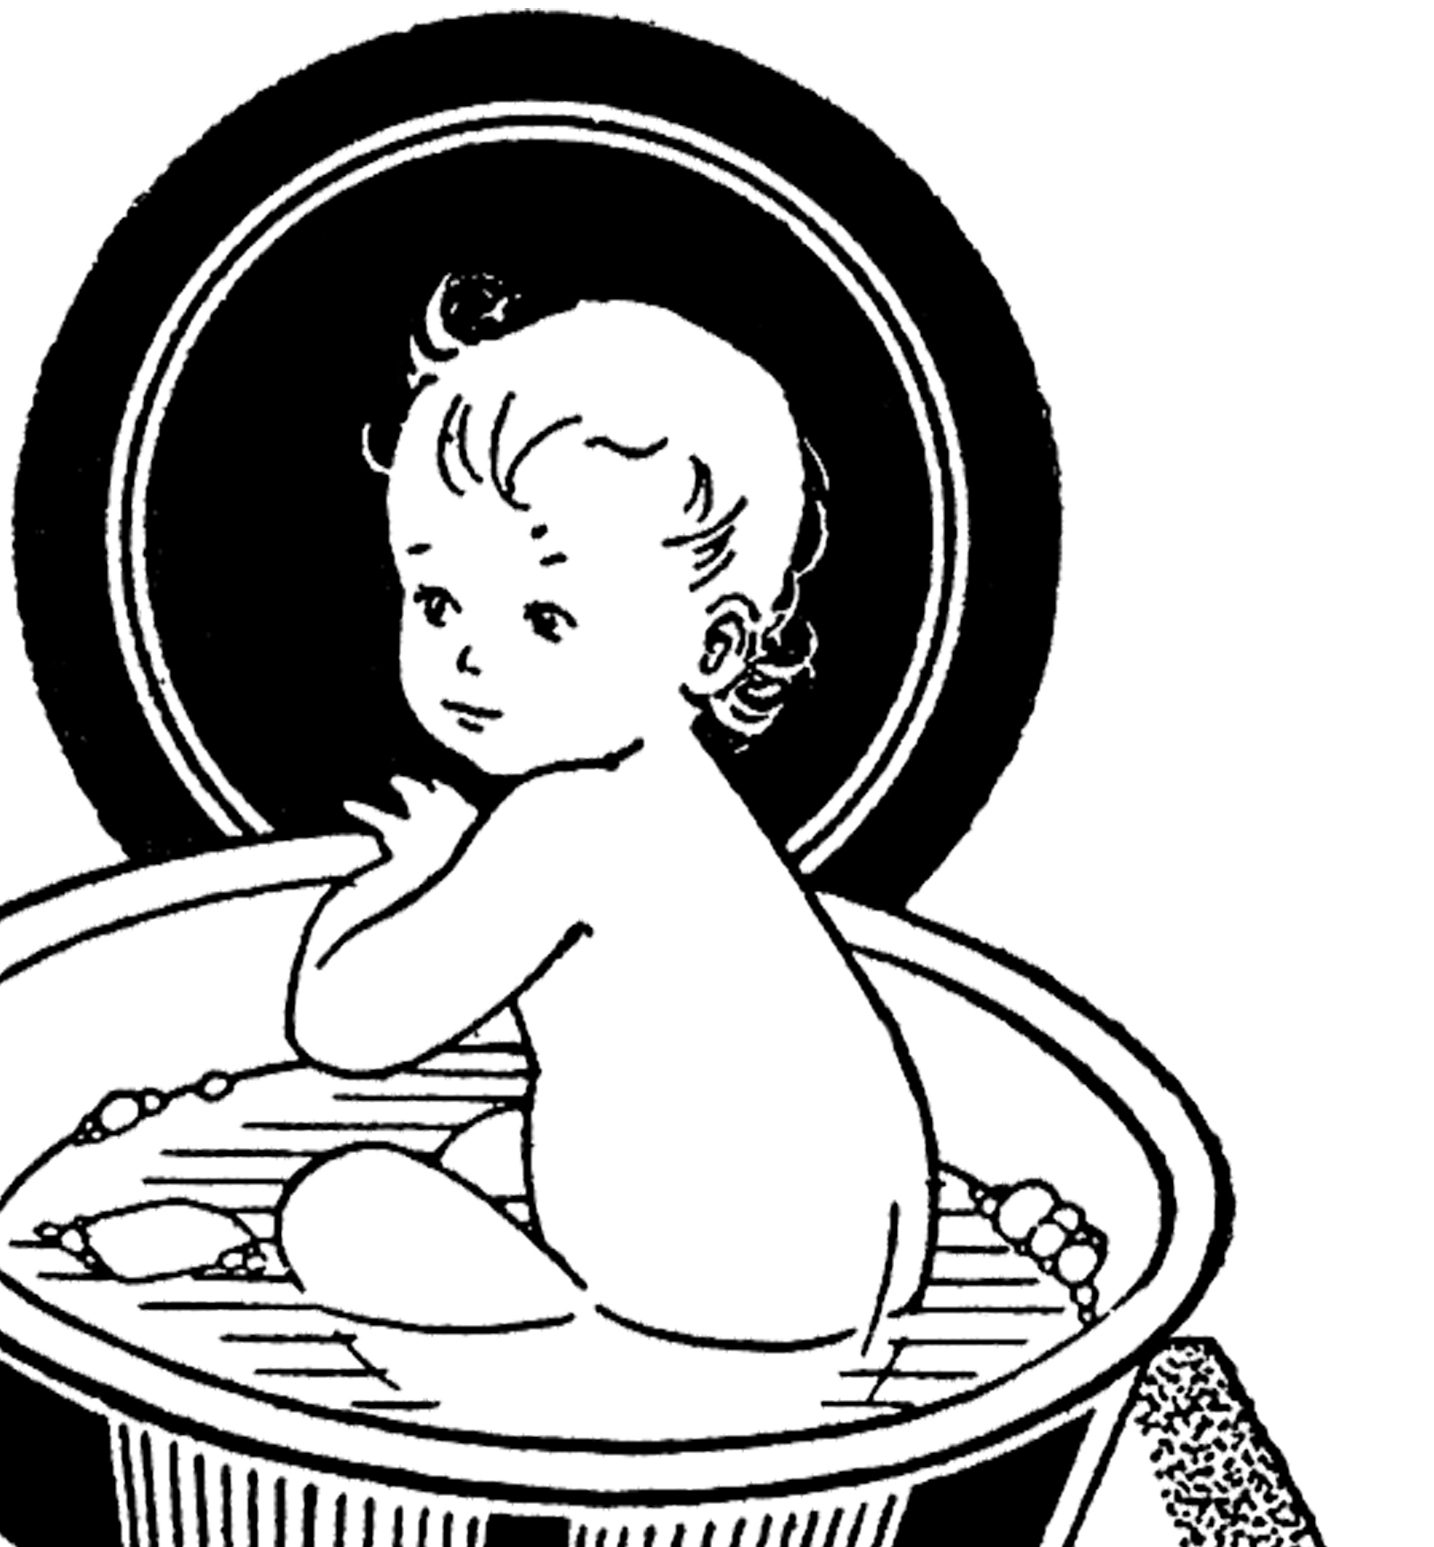 Vintage Baby in Bath Image - Cute! - The Graphics Fairy